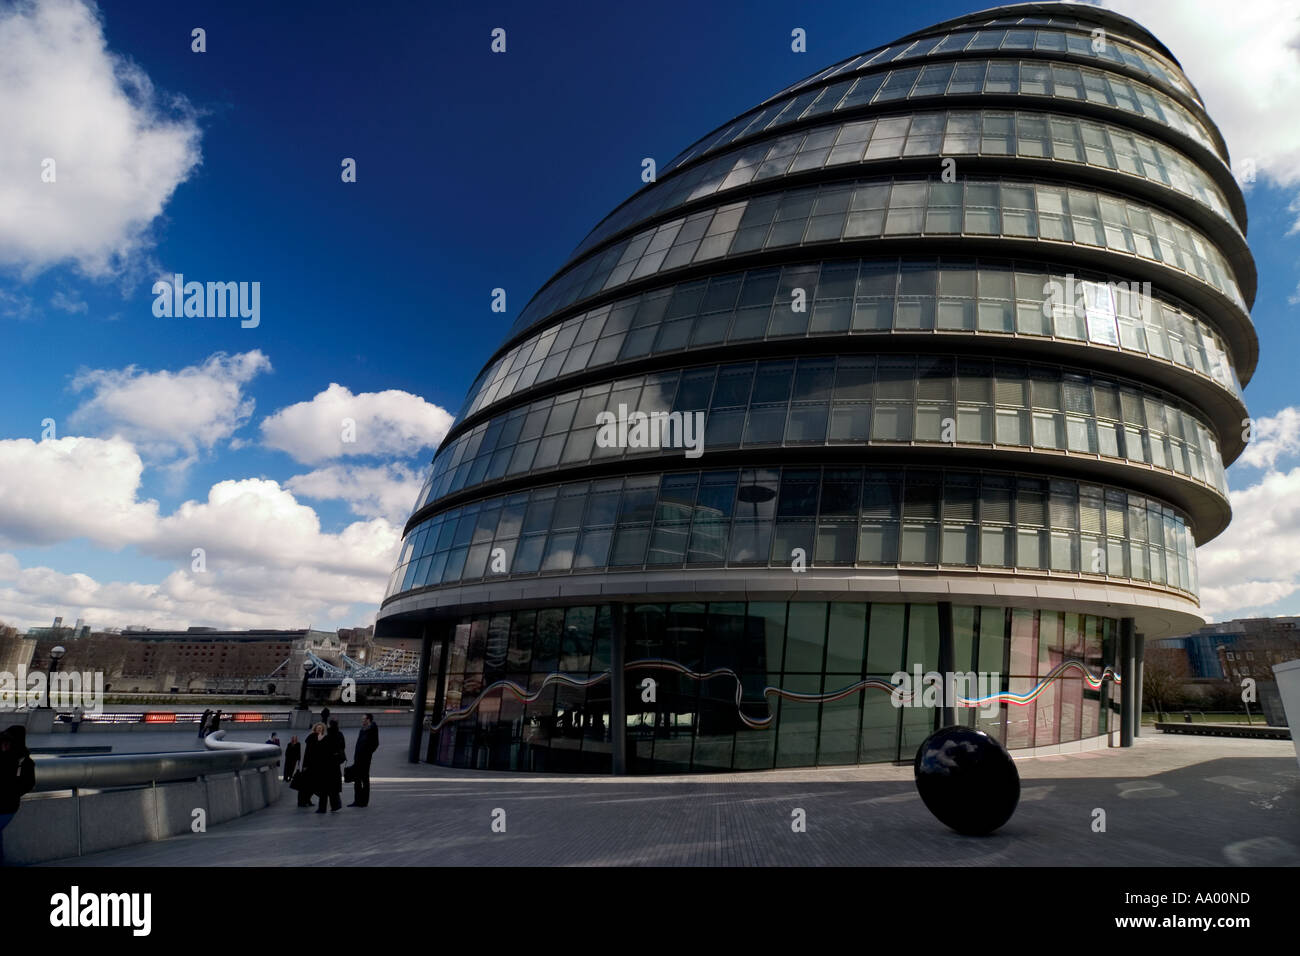 Greater London Authority Building or London New City Hall by Tower Bridge England UK - Stock Image